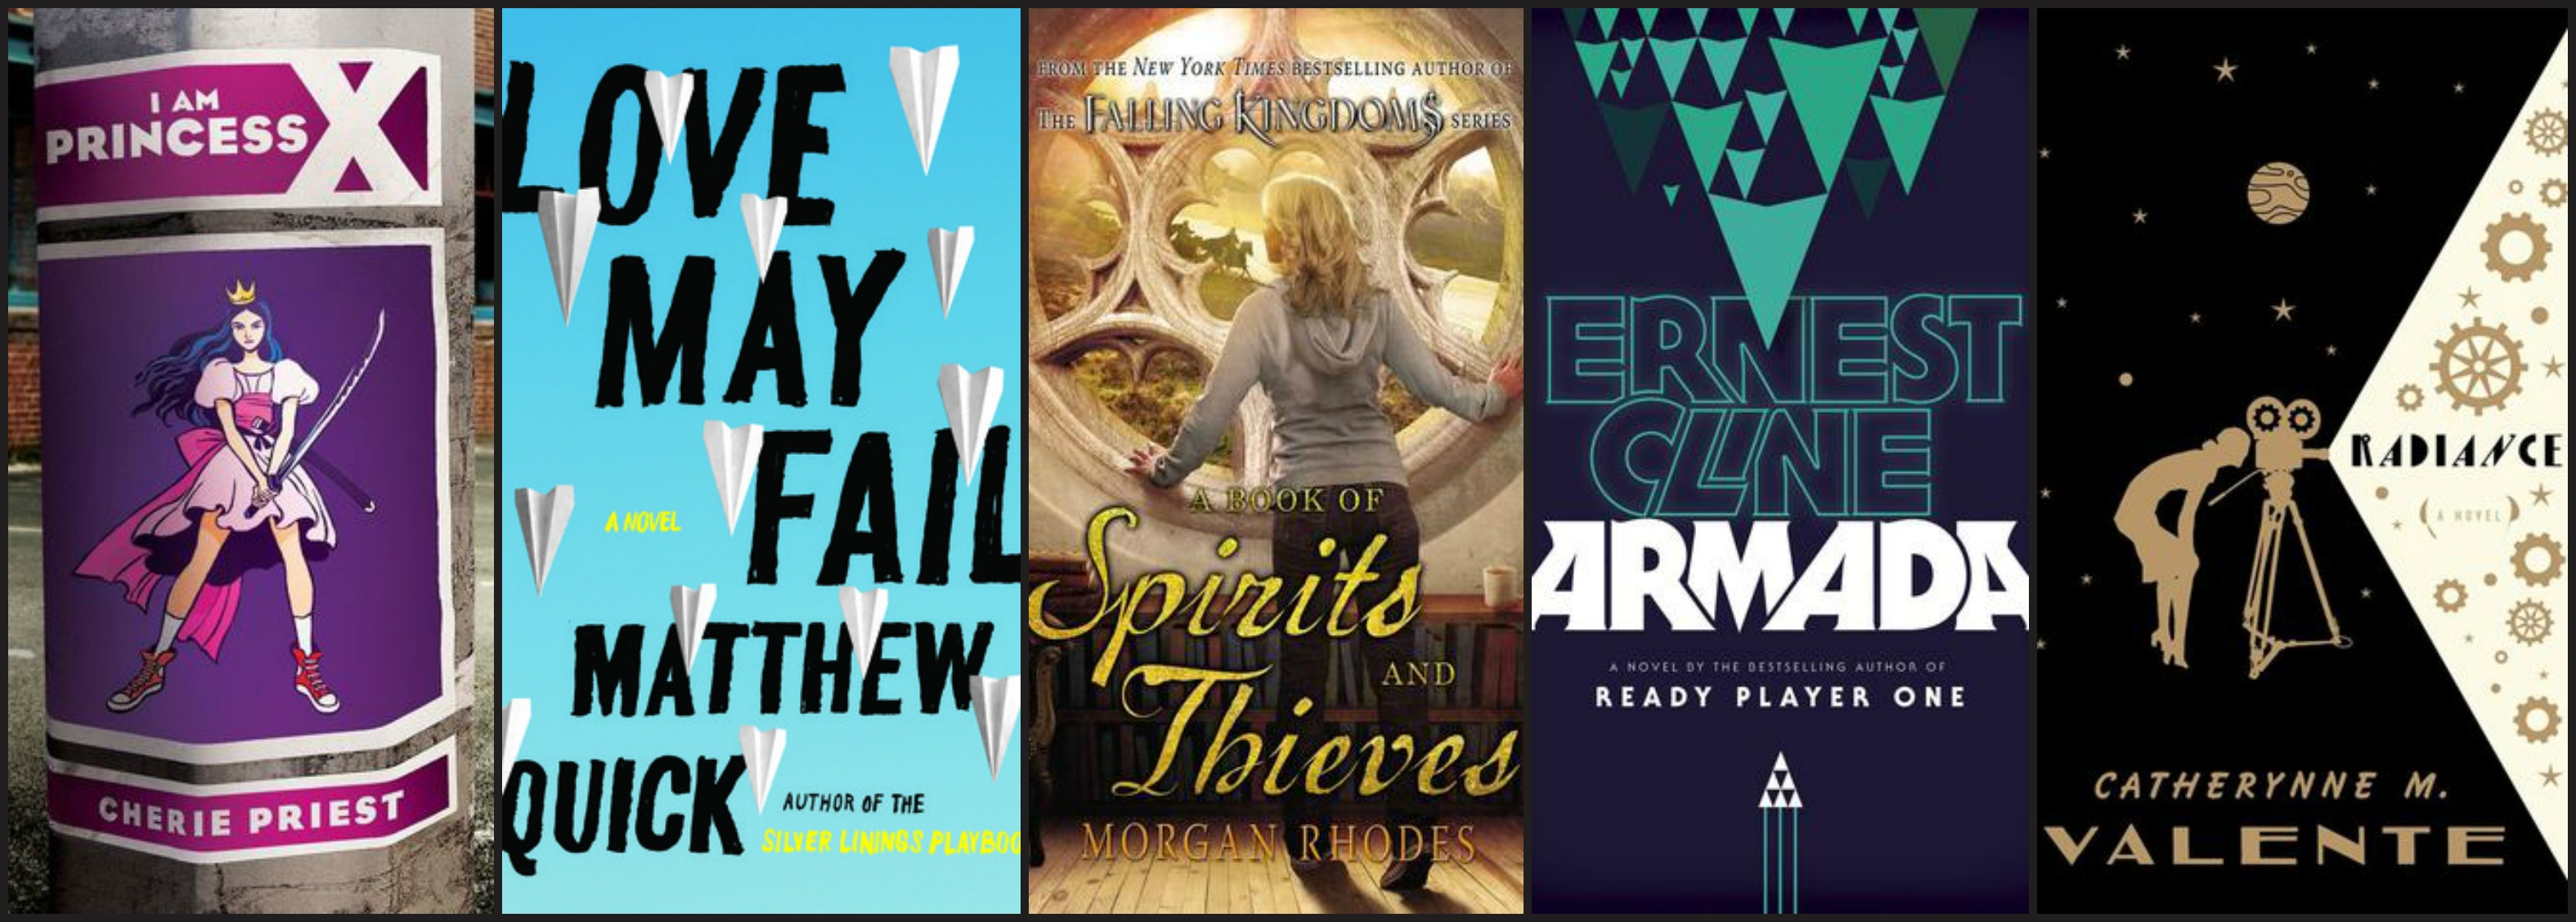 New Year, New Books: A Guide to Books in 2015 - Women